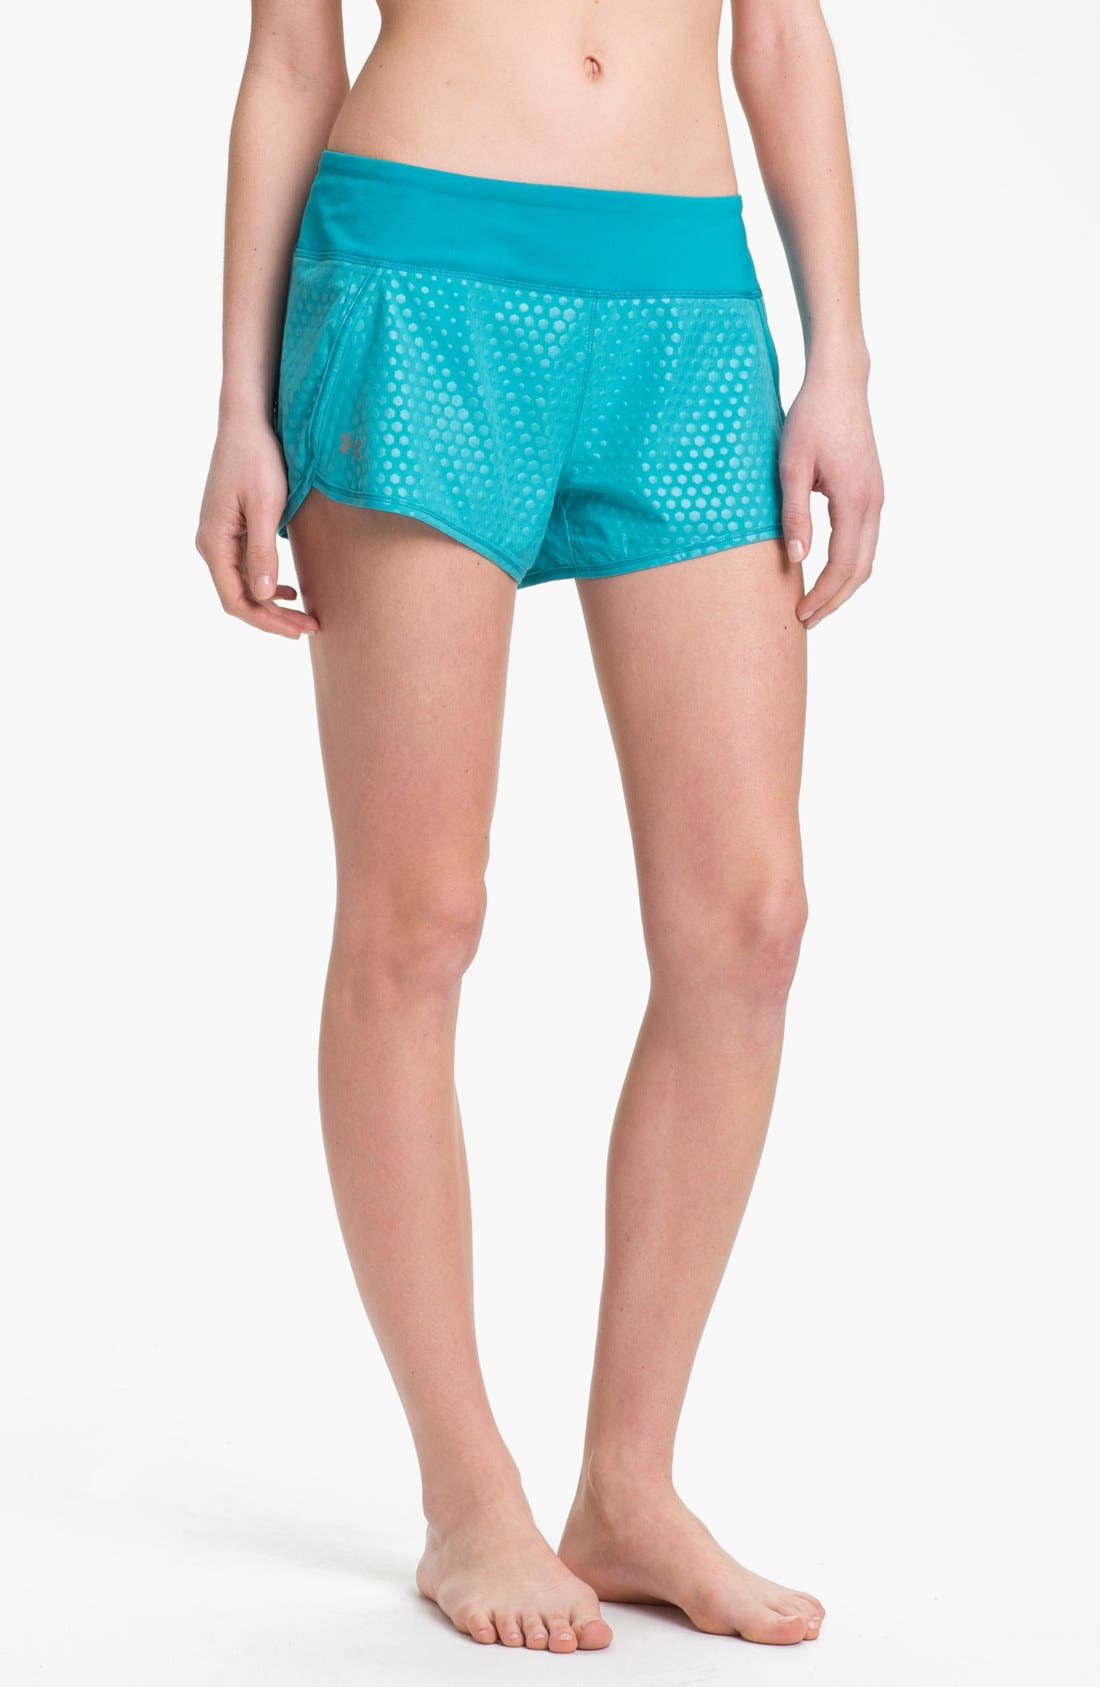 Alternate Image 1 Selected - Under Armour 'Get Set Go' Print Running Shorts